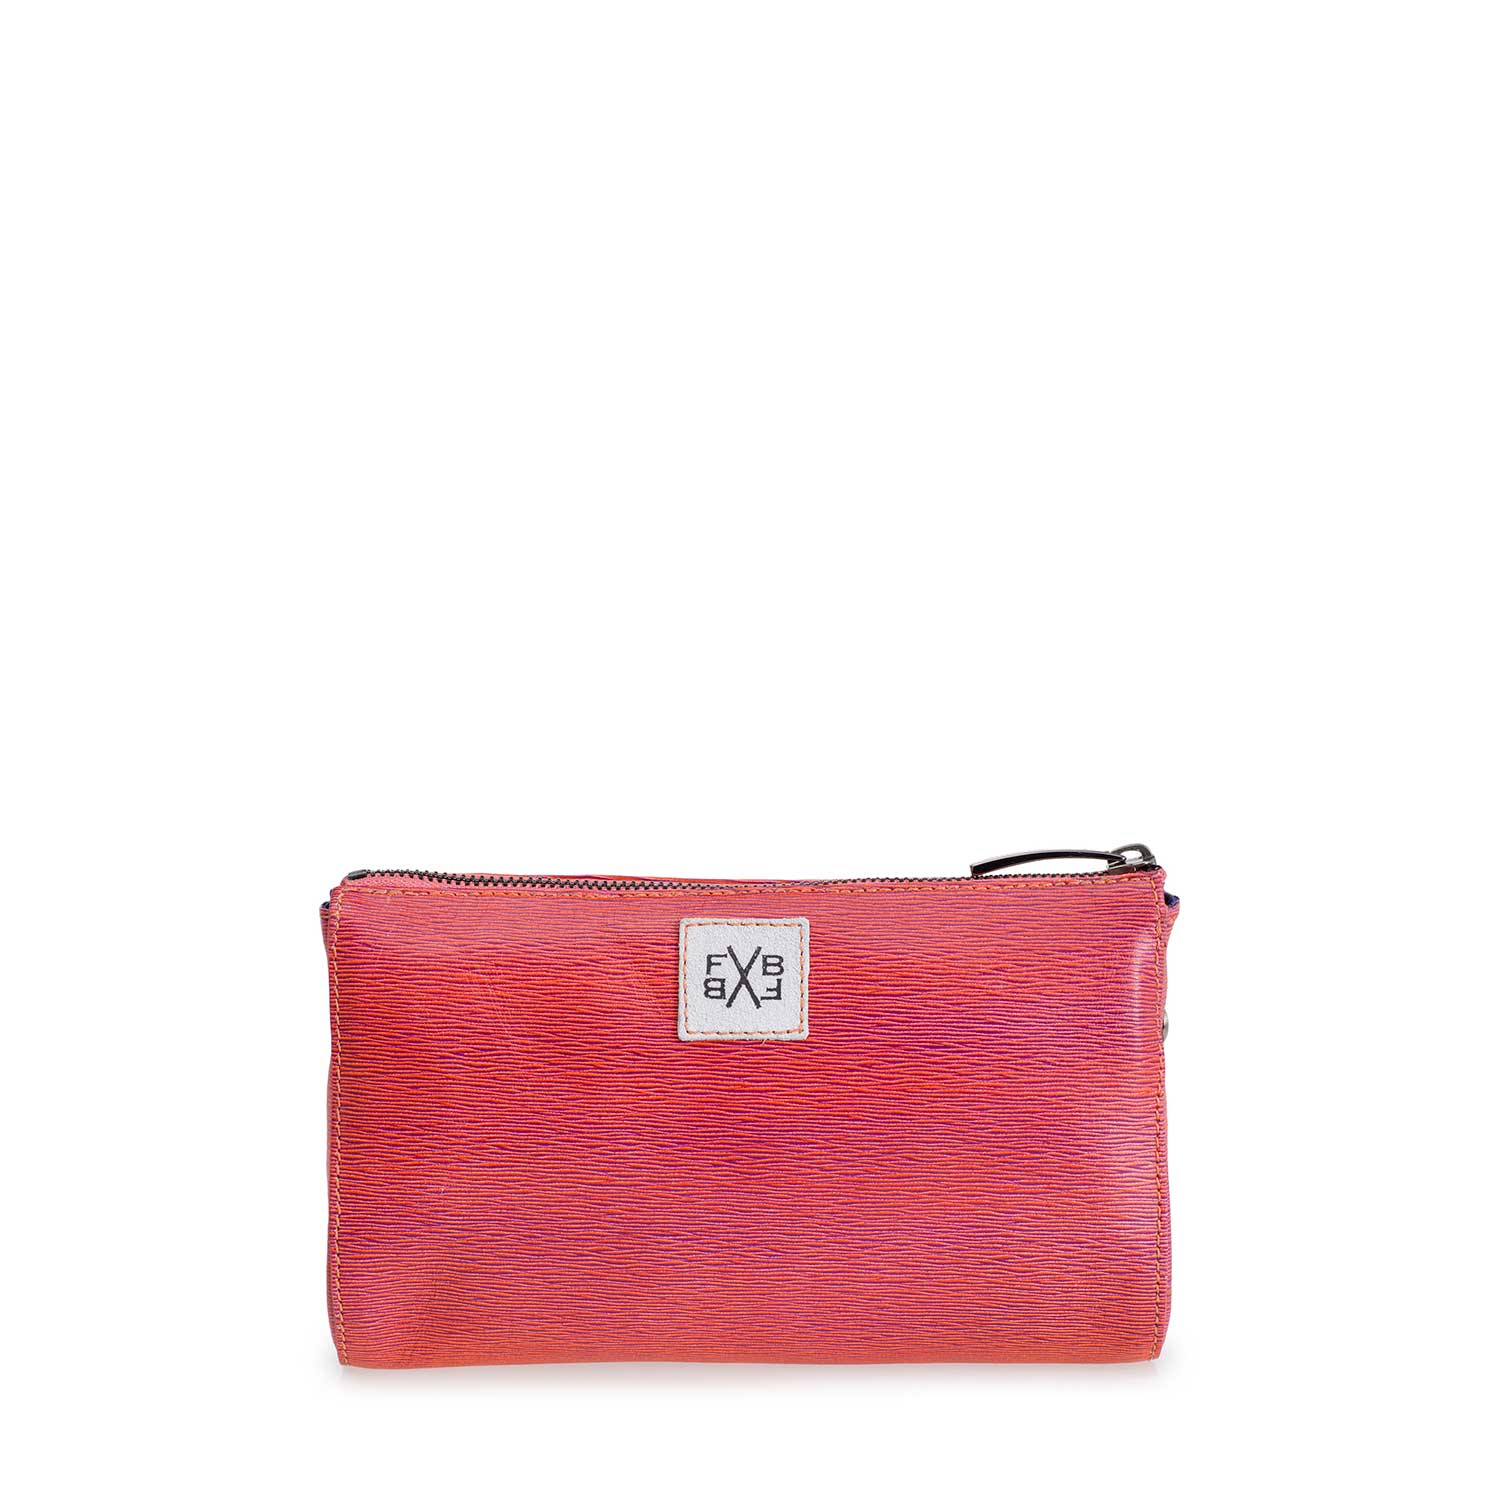 89000/04 - Coral red leather cross body bag